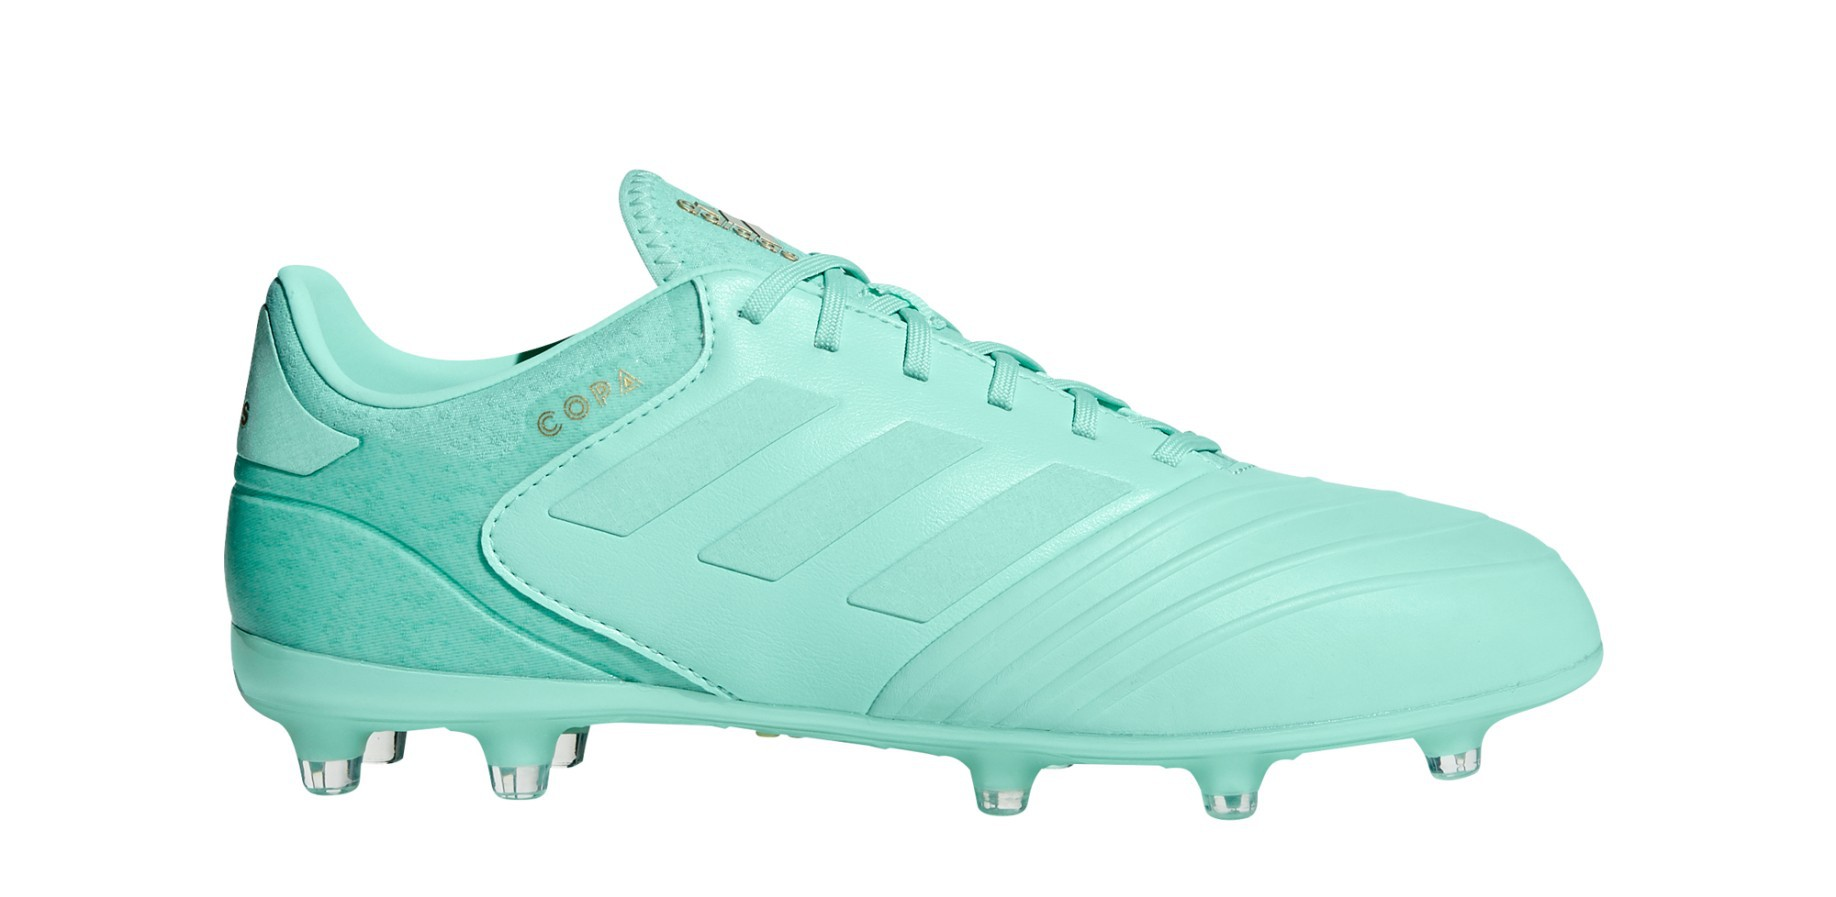 half off 9482b e798d Football boots Adidas Copa 18.2 FG Spectral Mode Pack colore Green - Adidas  - SportIT.com